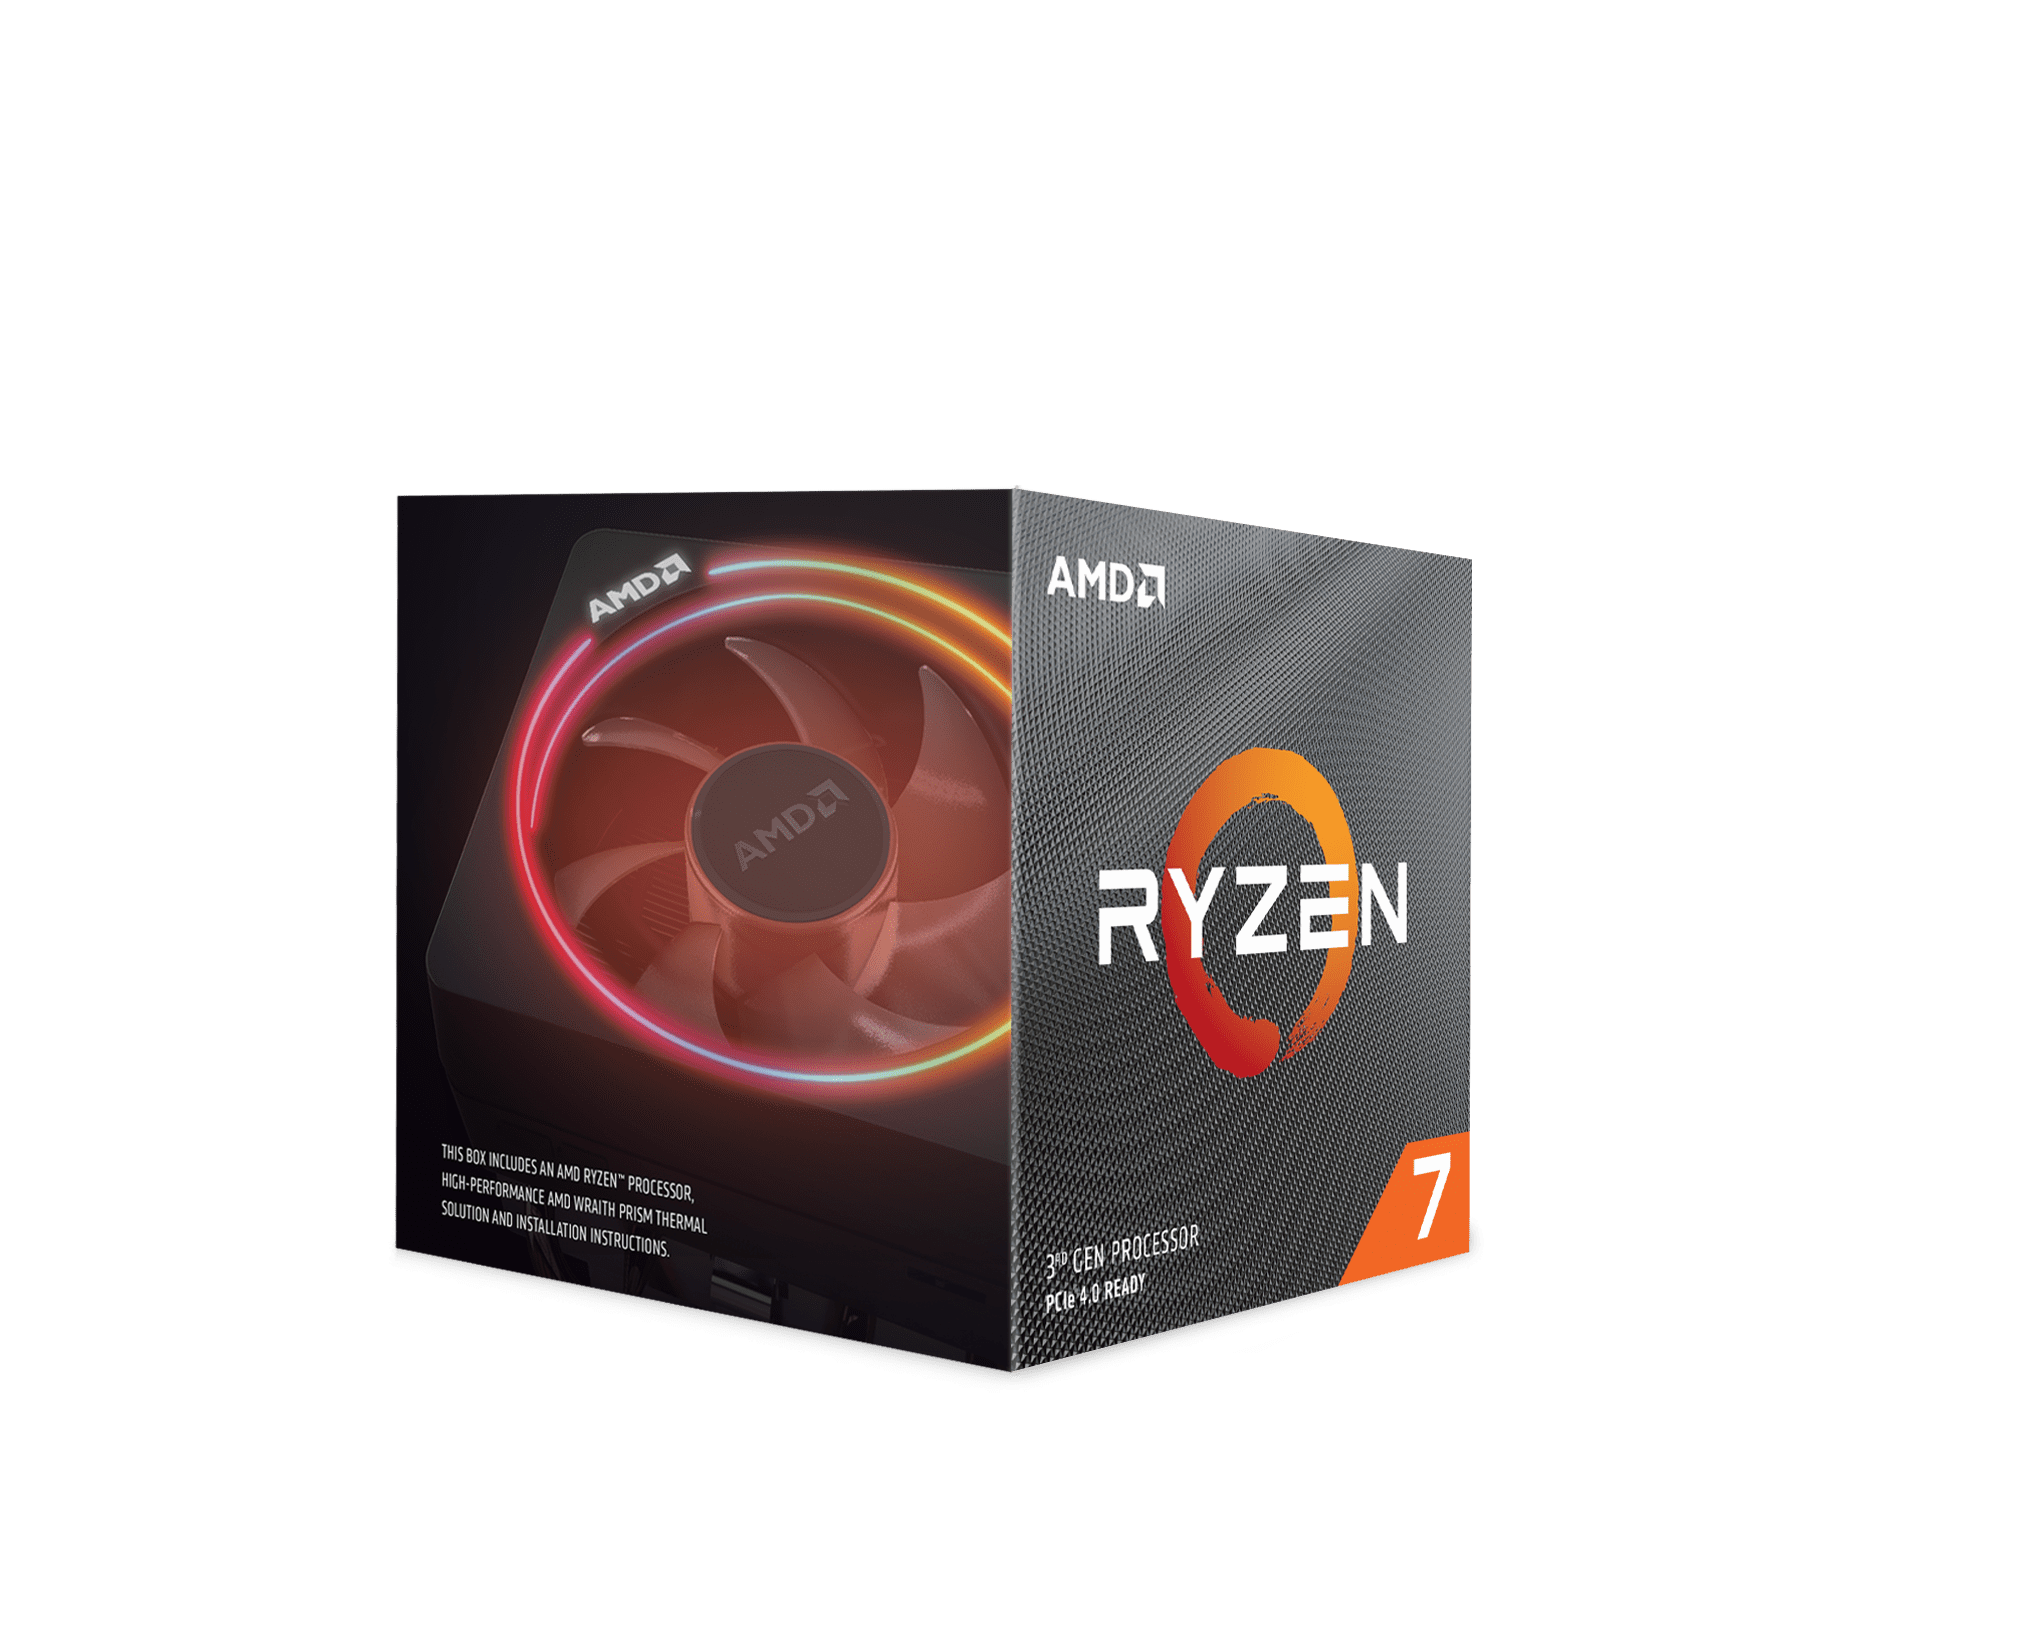 Amd Ryzen 7 3700x 8 Core 16 Thread 4 4 Ghz Am4 Processor Walmart Com Walmart Com